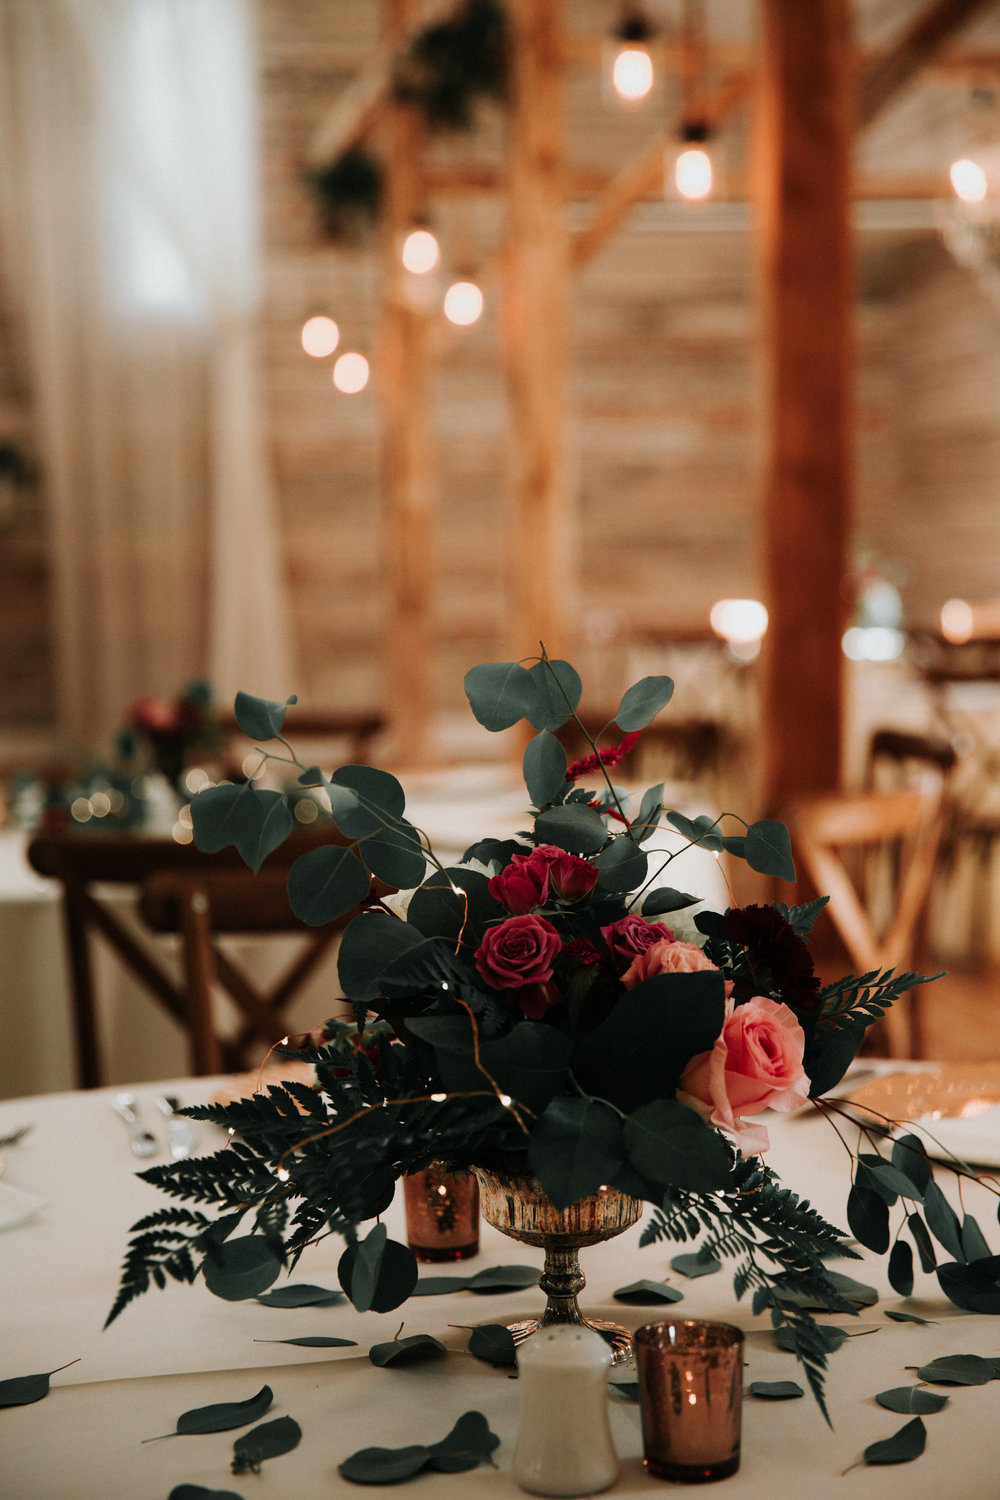 Gorgeous Floral Wedding Centerpieces - Athens, Tennessee Barn Wedding -- The Overwhelmed Bride Wedding Blog